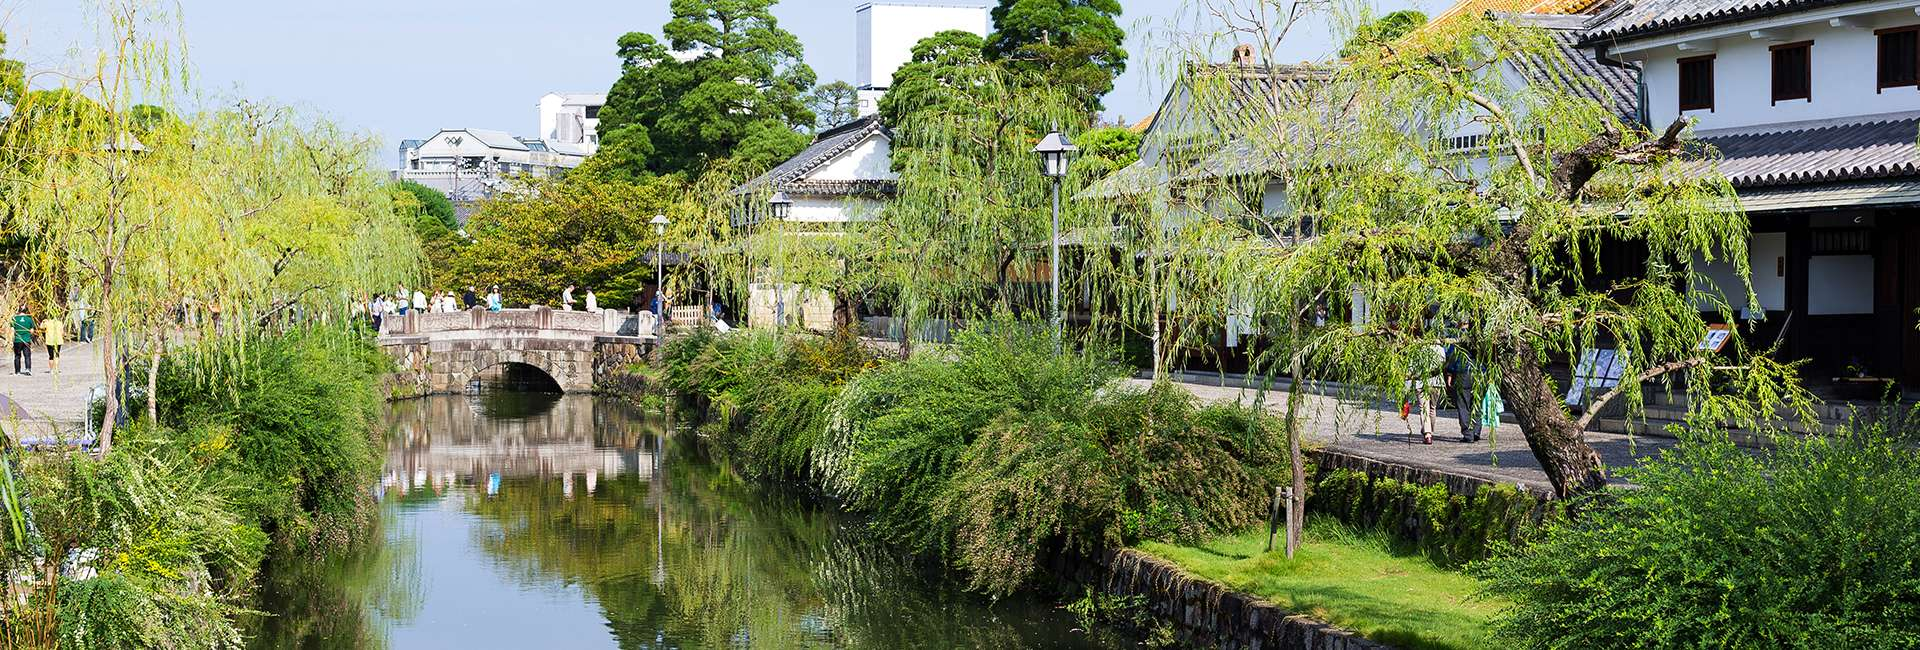 view of Yanagawa